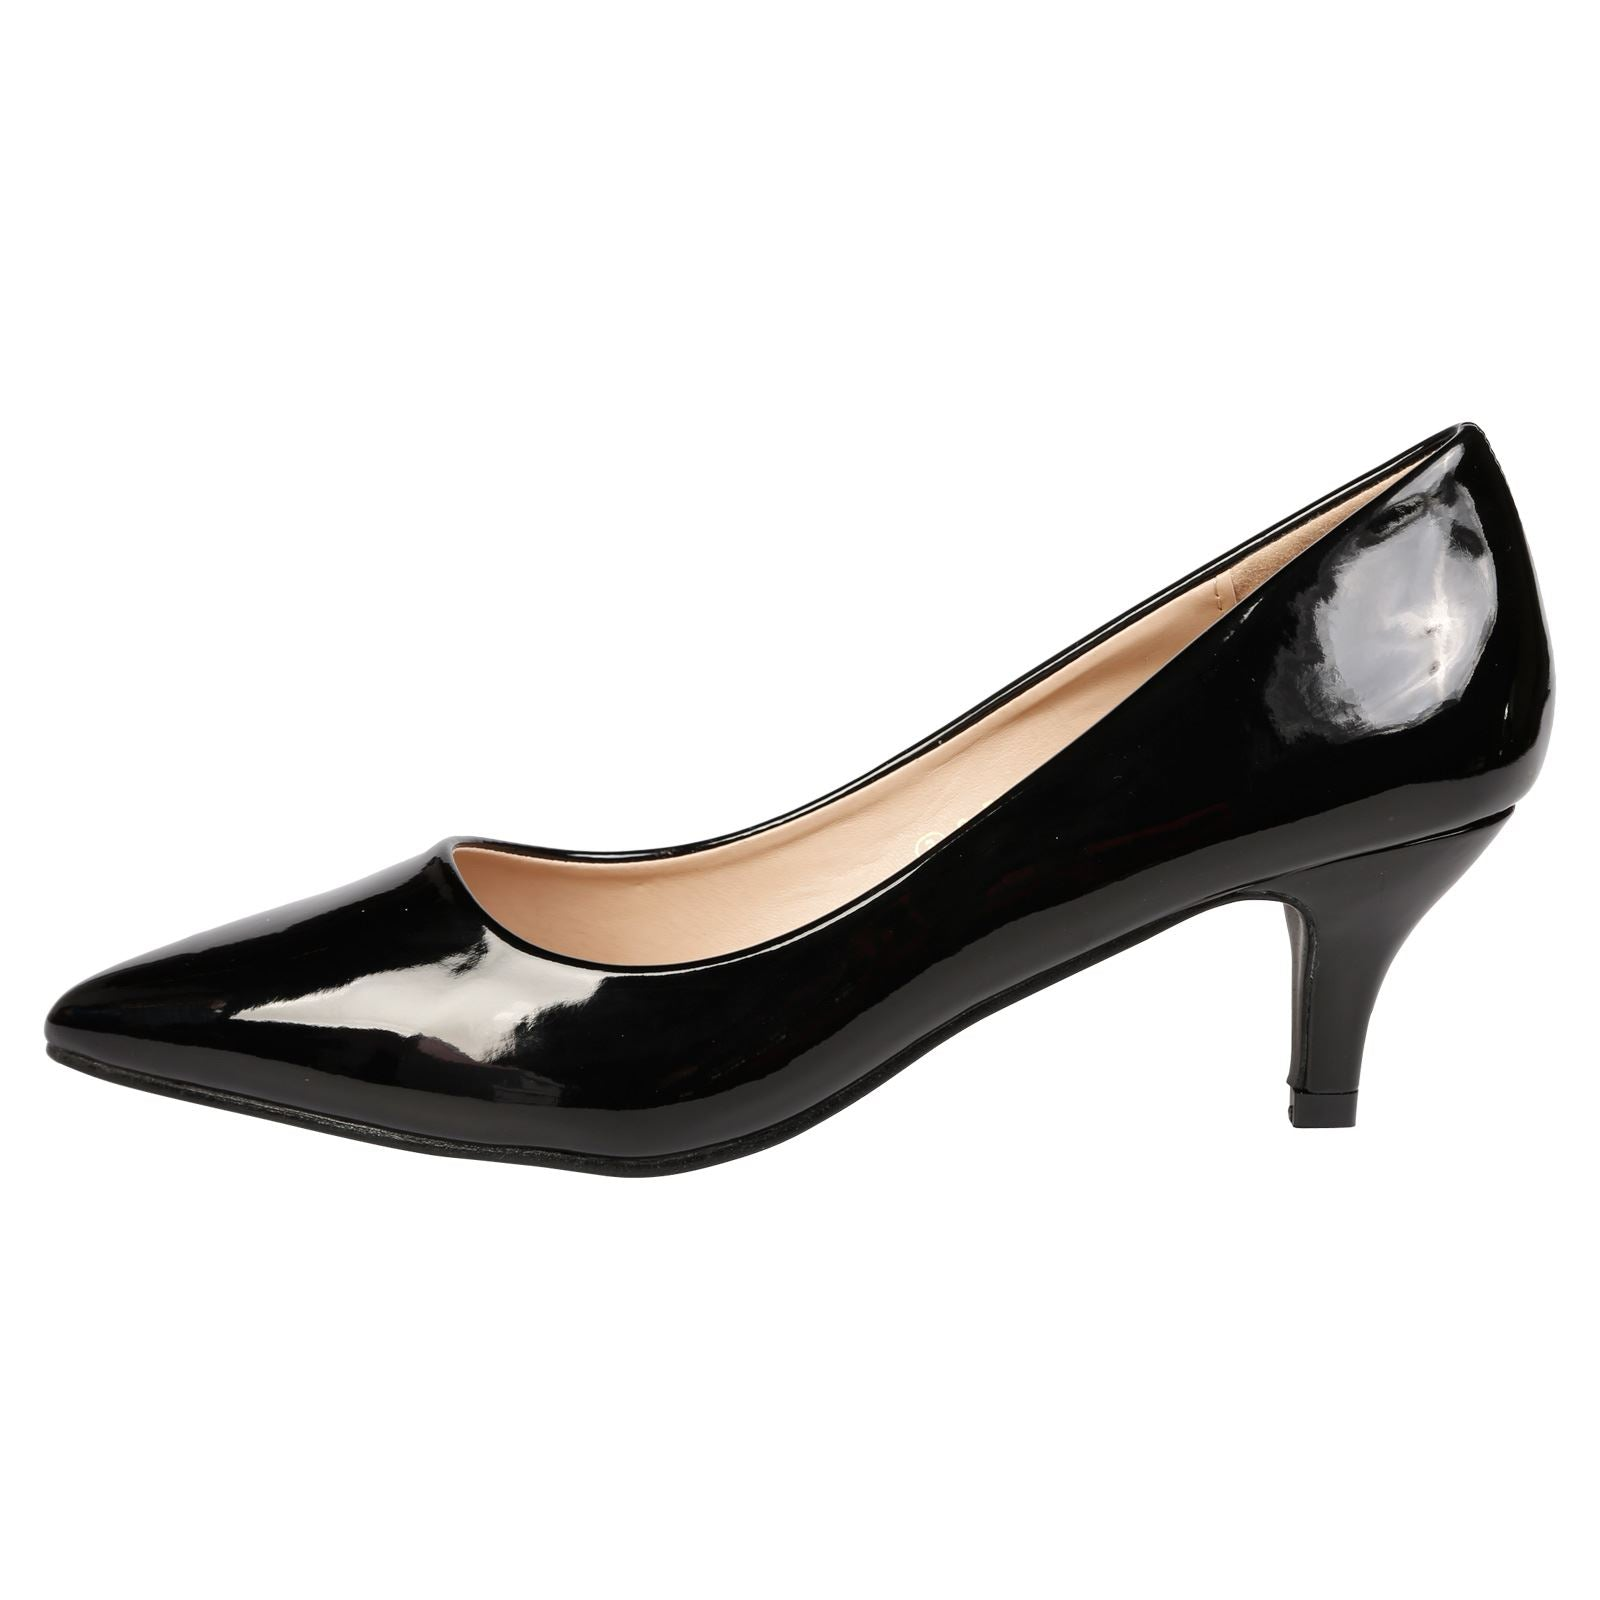 Miranda Kitten Heel Pointed Toe Court Shoes in Black Patent